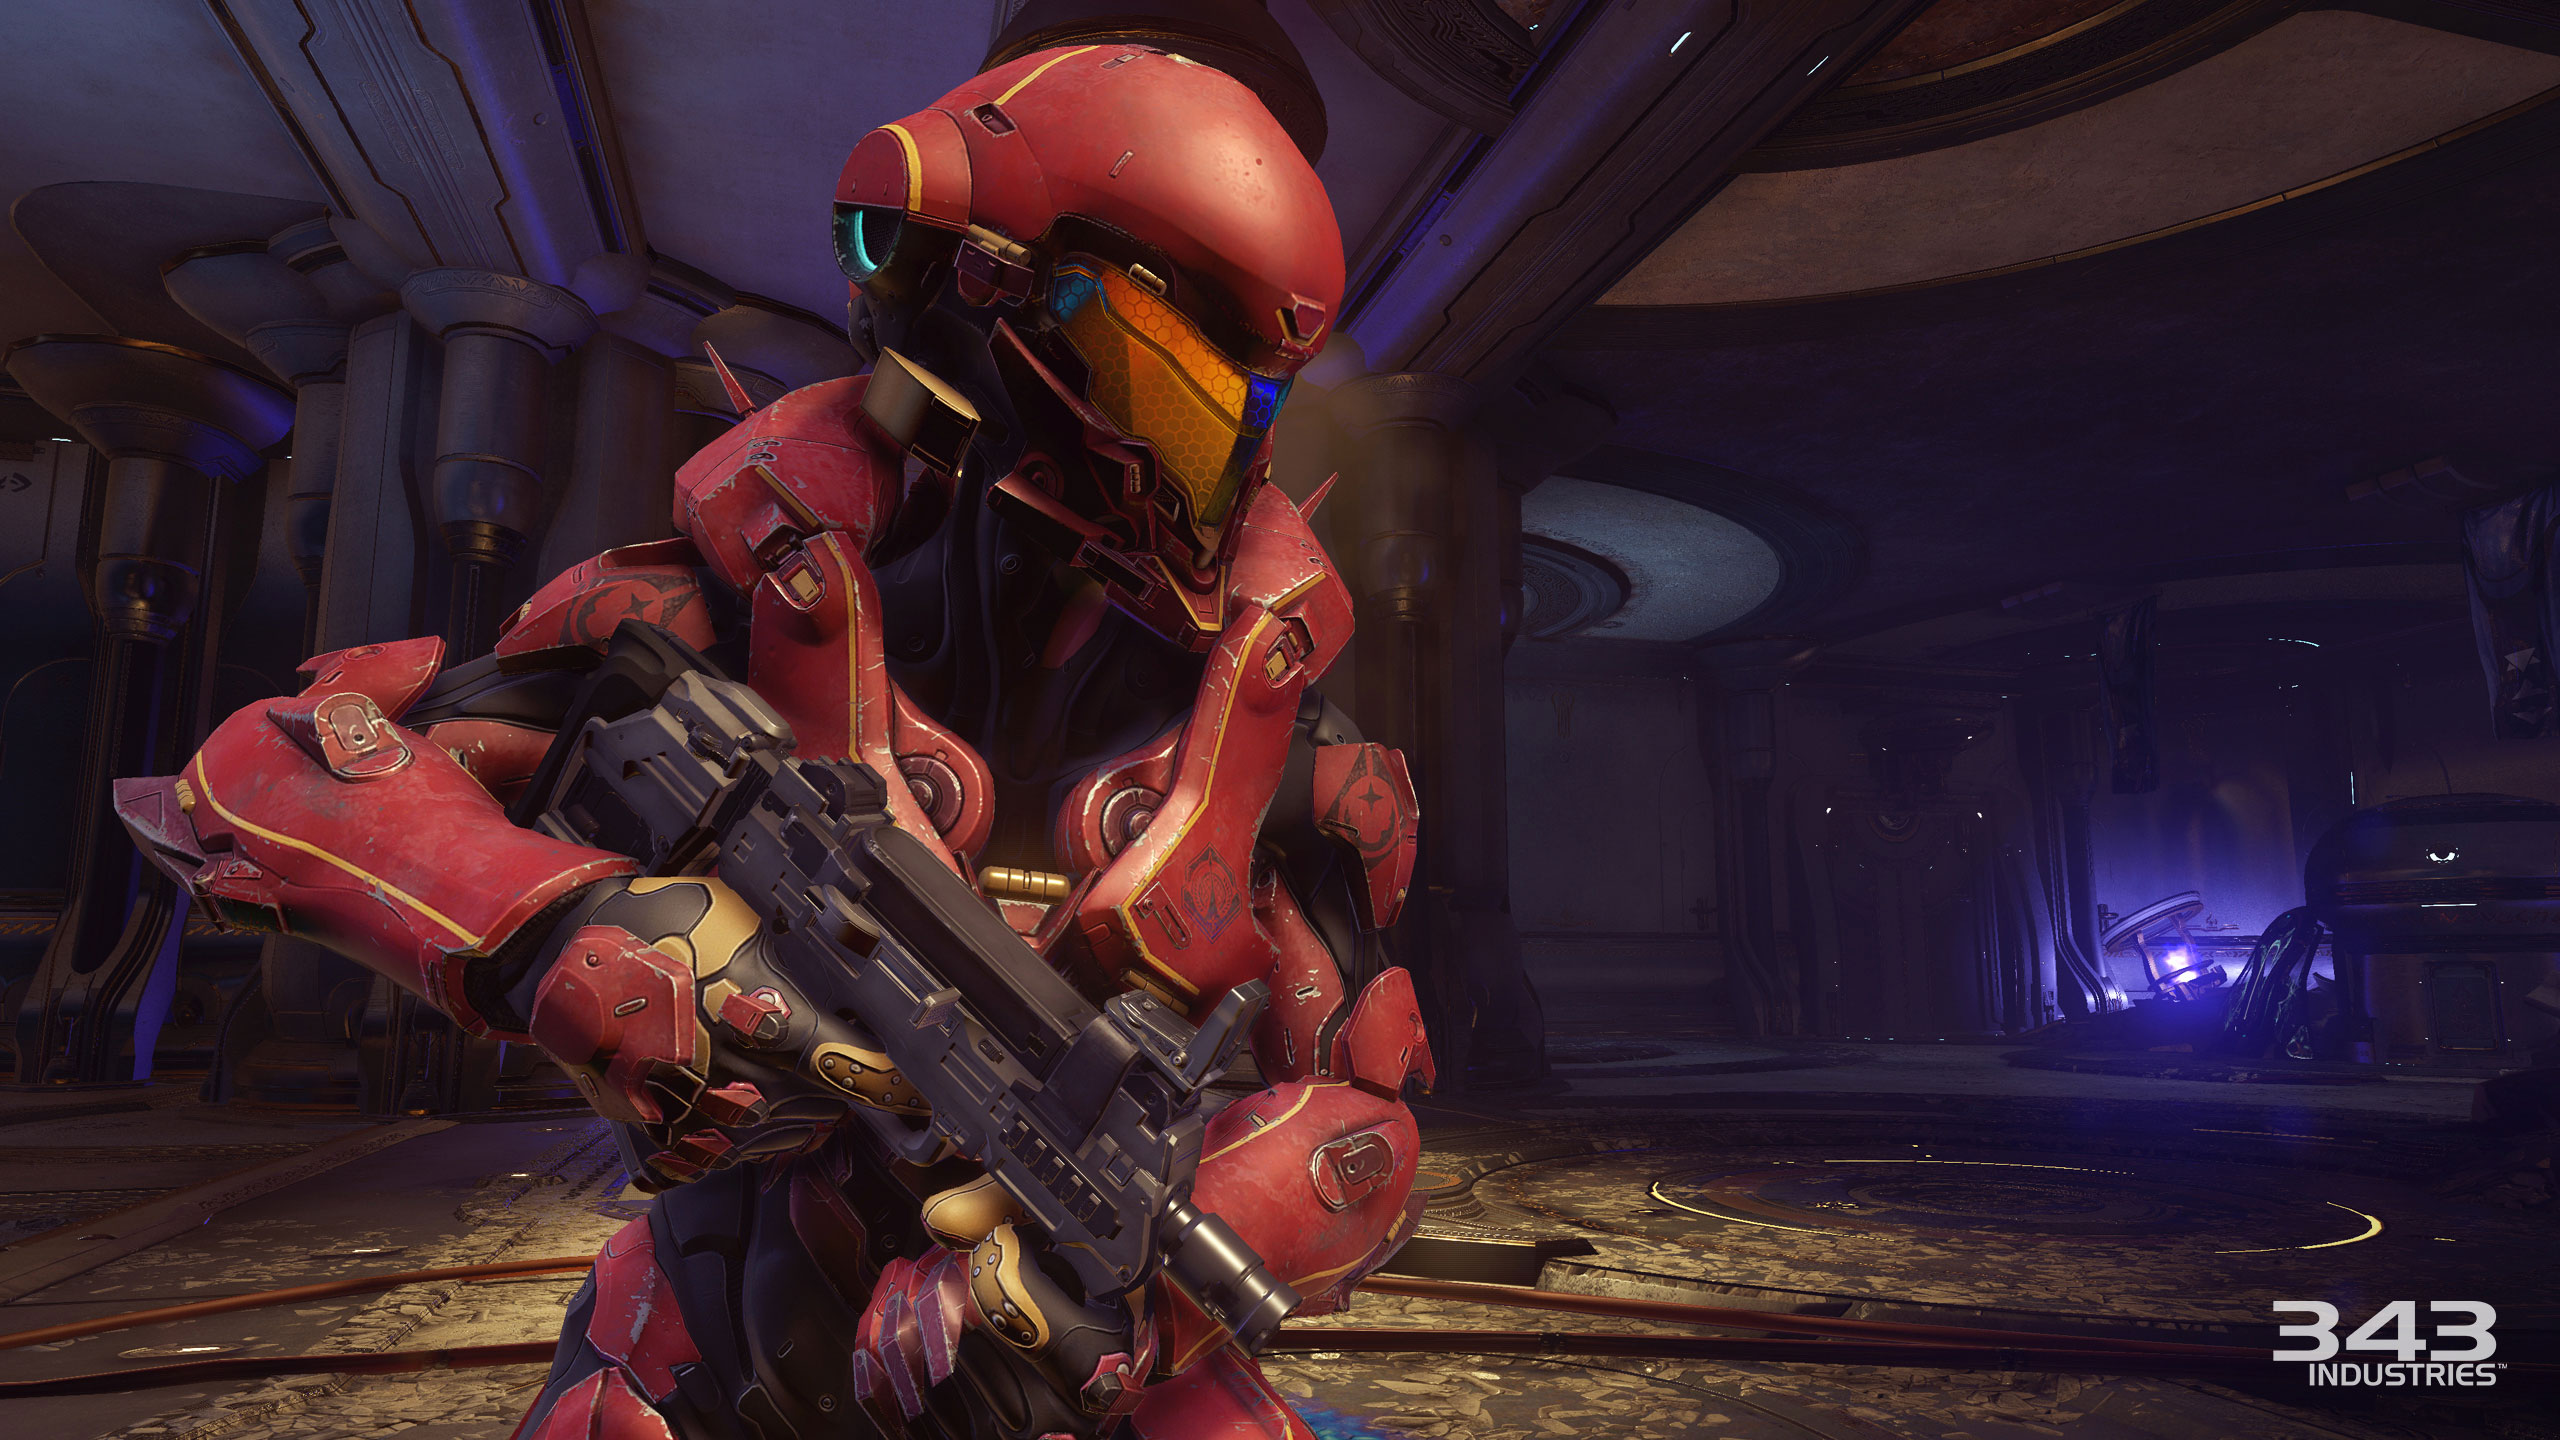 halo 4 banned from matchmaking how long 343 industries's latest update, about 10 days from the launch of halo 5: guardians, concerns the multiplayer policies and structures — outlining new features, skill ratings and a banhammer stricter than an mlb world series umpire edit: because this author is a moron, a previous edition of this story misidentified the maker of halo 5: guardians.